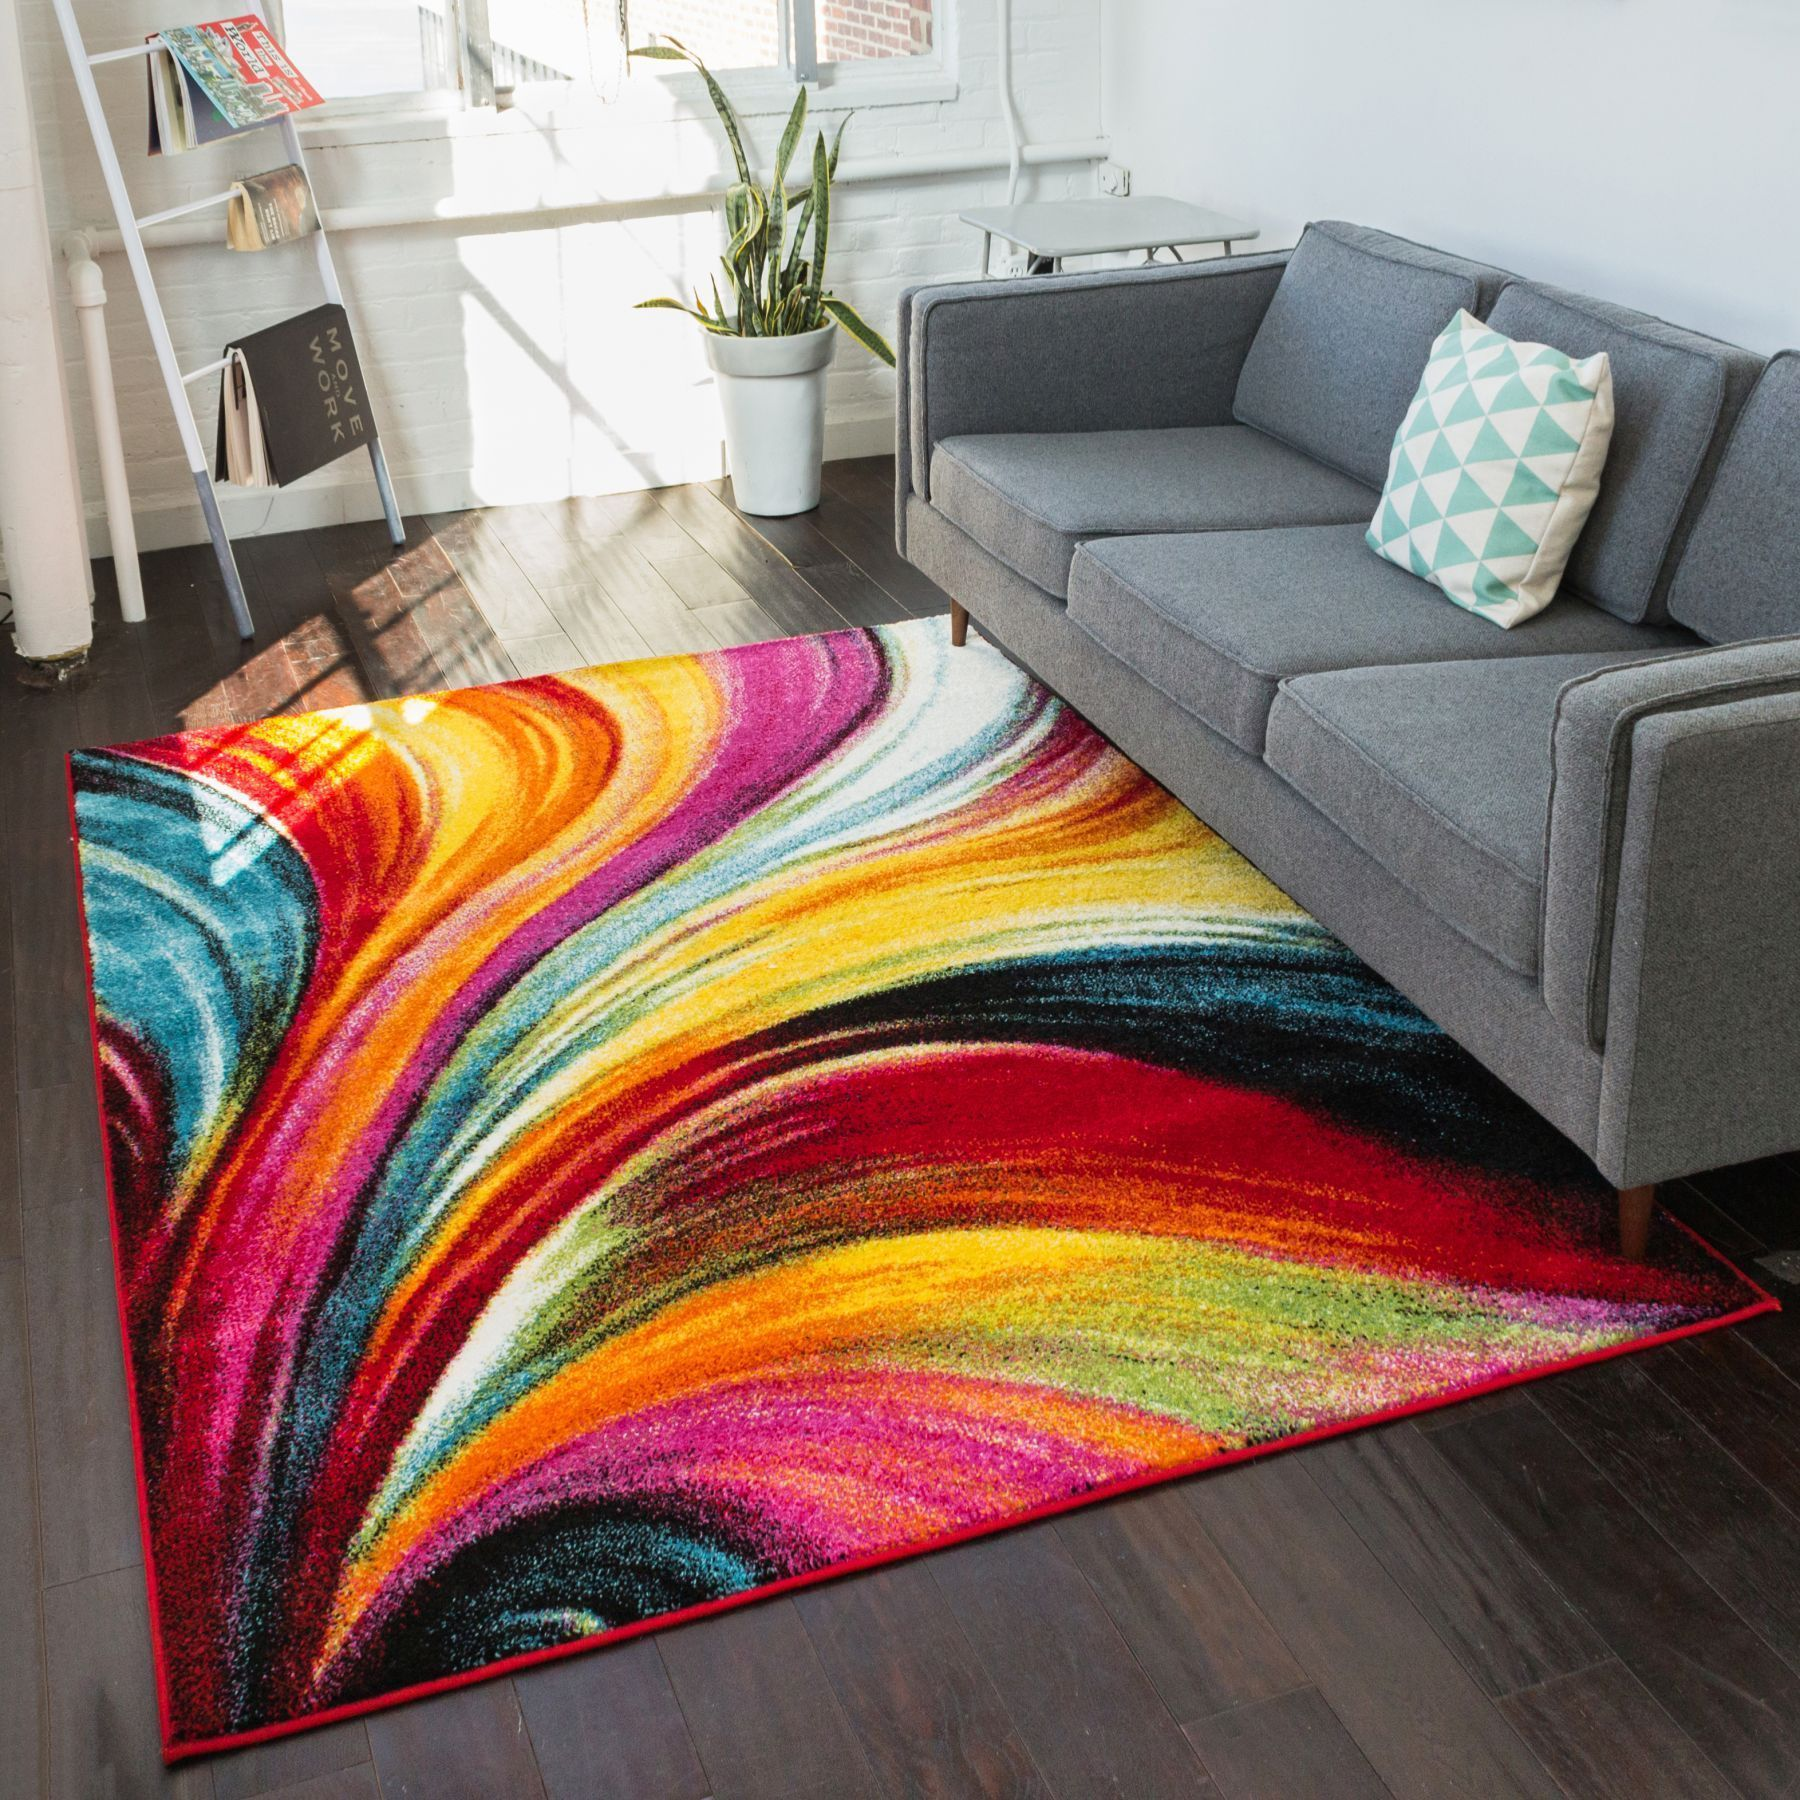 Overstock Com Online Shopping Bedding Furniture Electronics Jewelry Clothing More Bright Area Rug Colorful Rugs Well Woven